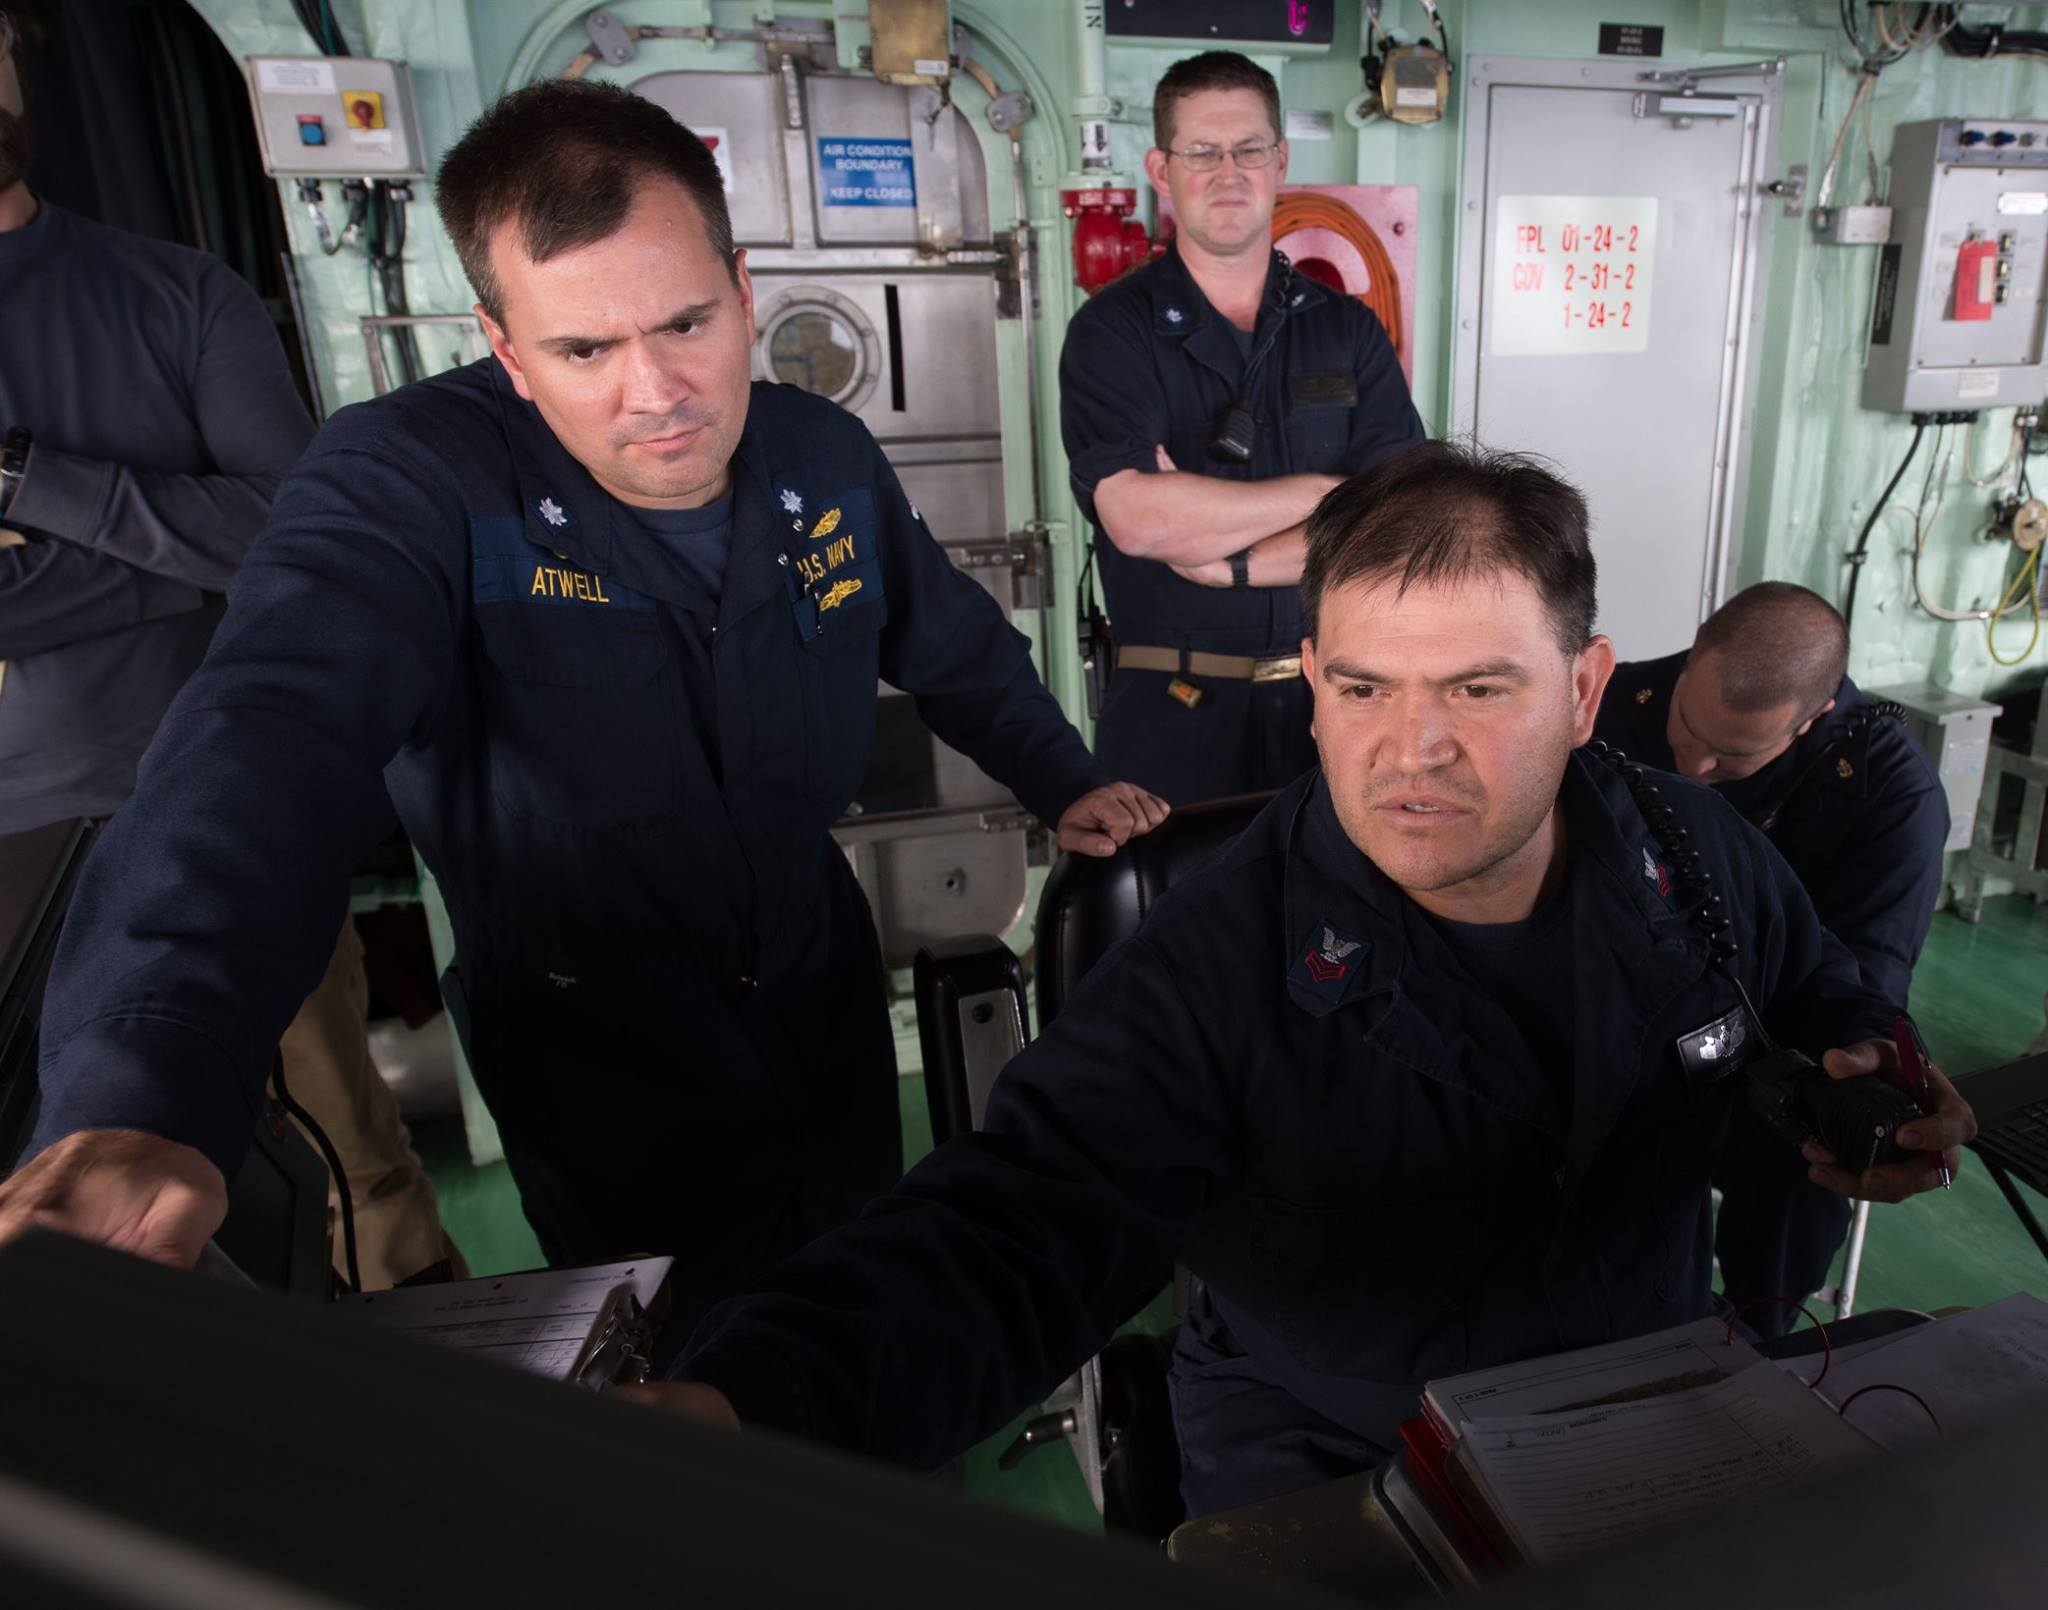 Cmdr. Michael Atwell, commanding officer of LCS Crew 101, observes Engineman 1st Class Silvano Becerra make the necessary engineering adjustments for USS Fort Worth (LCS 3) to operate at high speeds in response to a man overboard reported by a merchant vessel in the South China Sea in late 2015. US Navy Photo